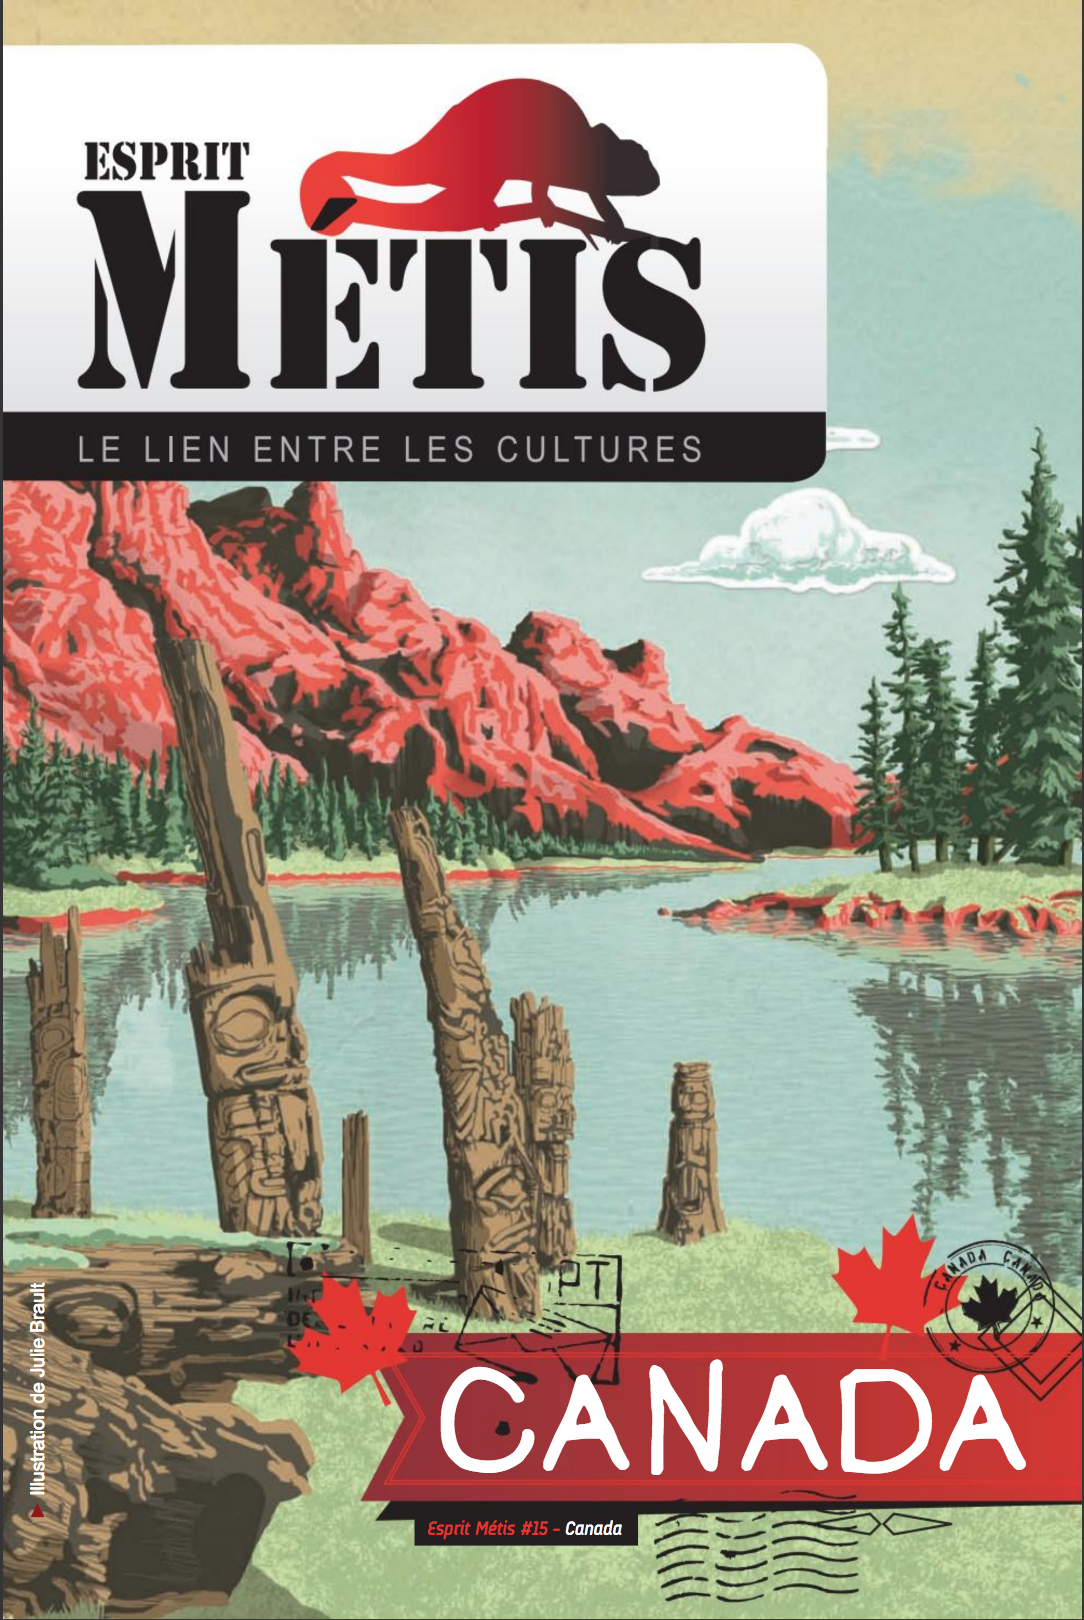 Esprit Métis #15 / Canada ... land of adventure